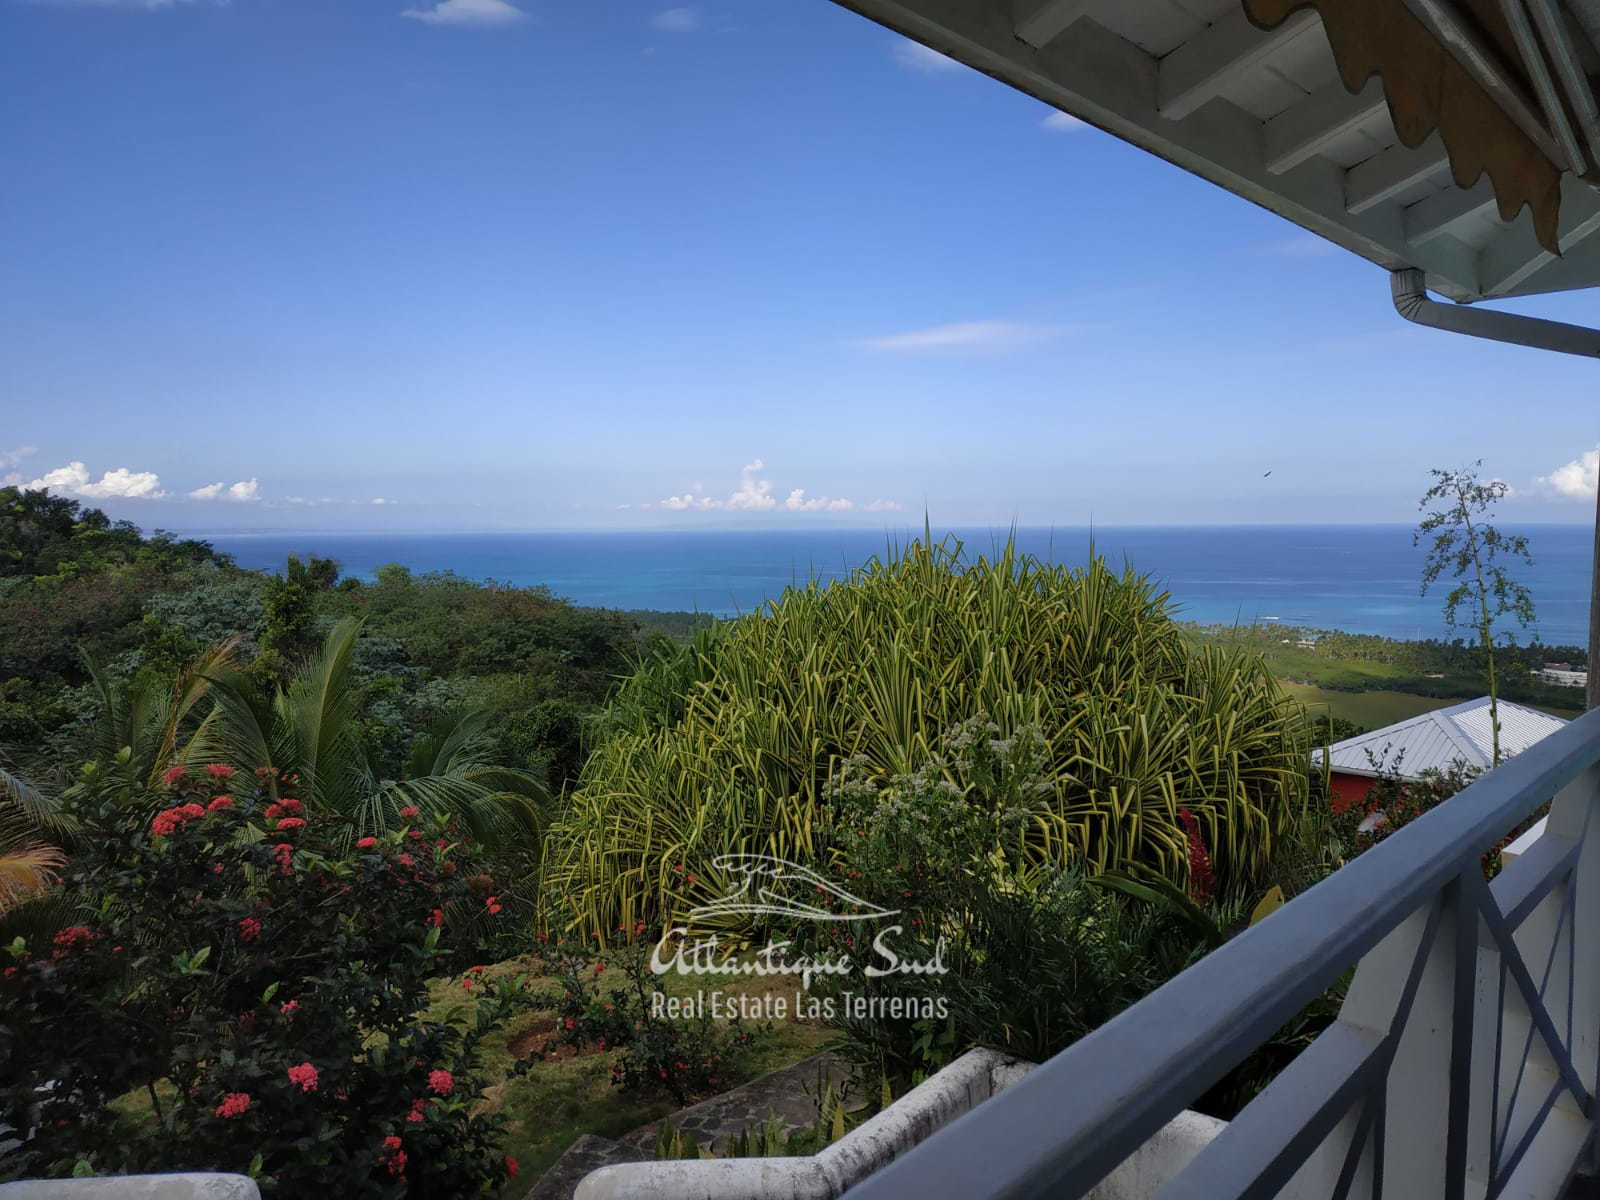 Hillside house for sale in Las terrenas9.jpg